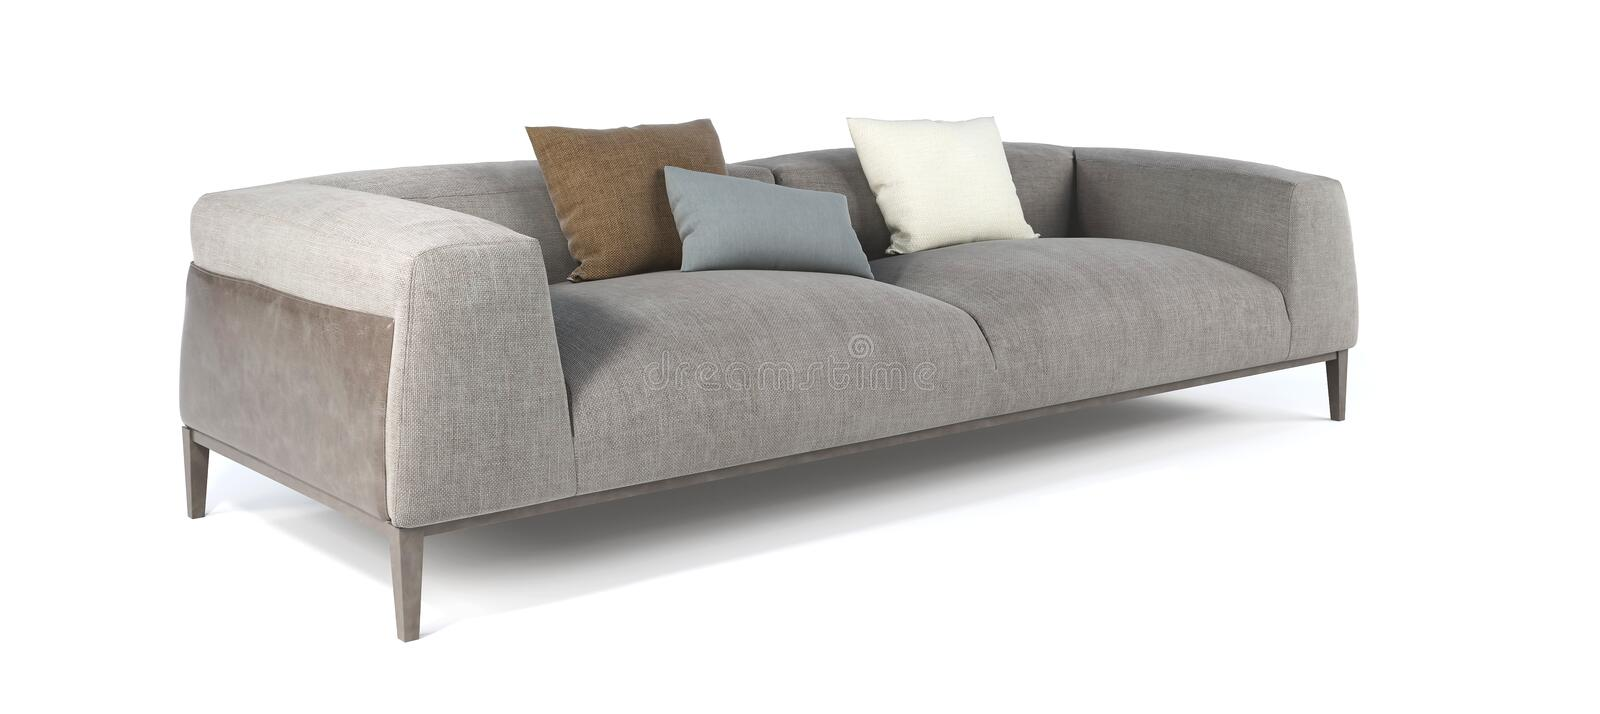 Modern gray fabric sofa with legs and pillows on isolated white background. Furniture, interior object royalty free stock photos